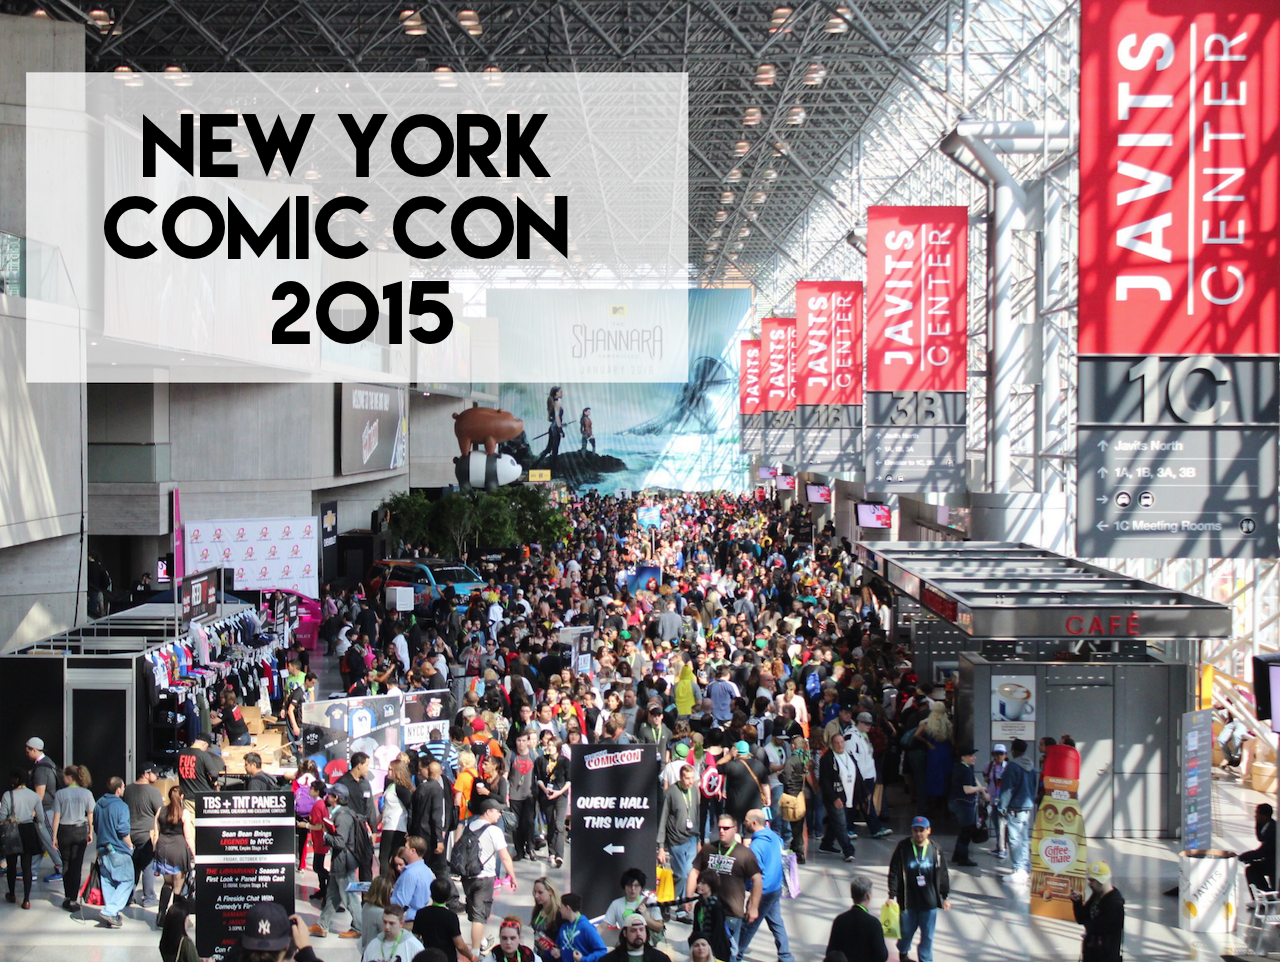 New York Comic Con 2015